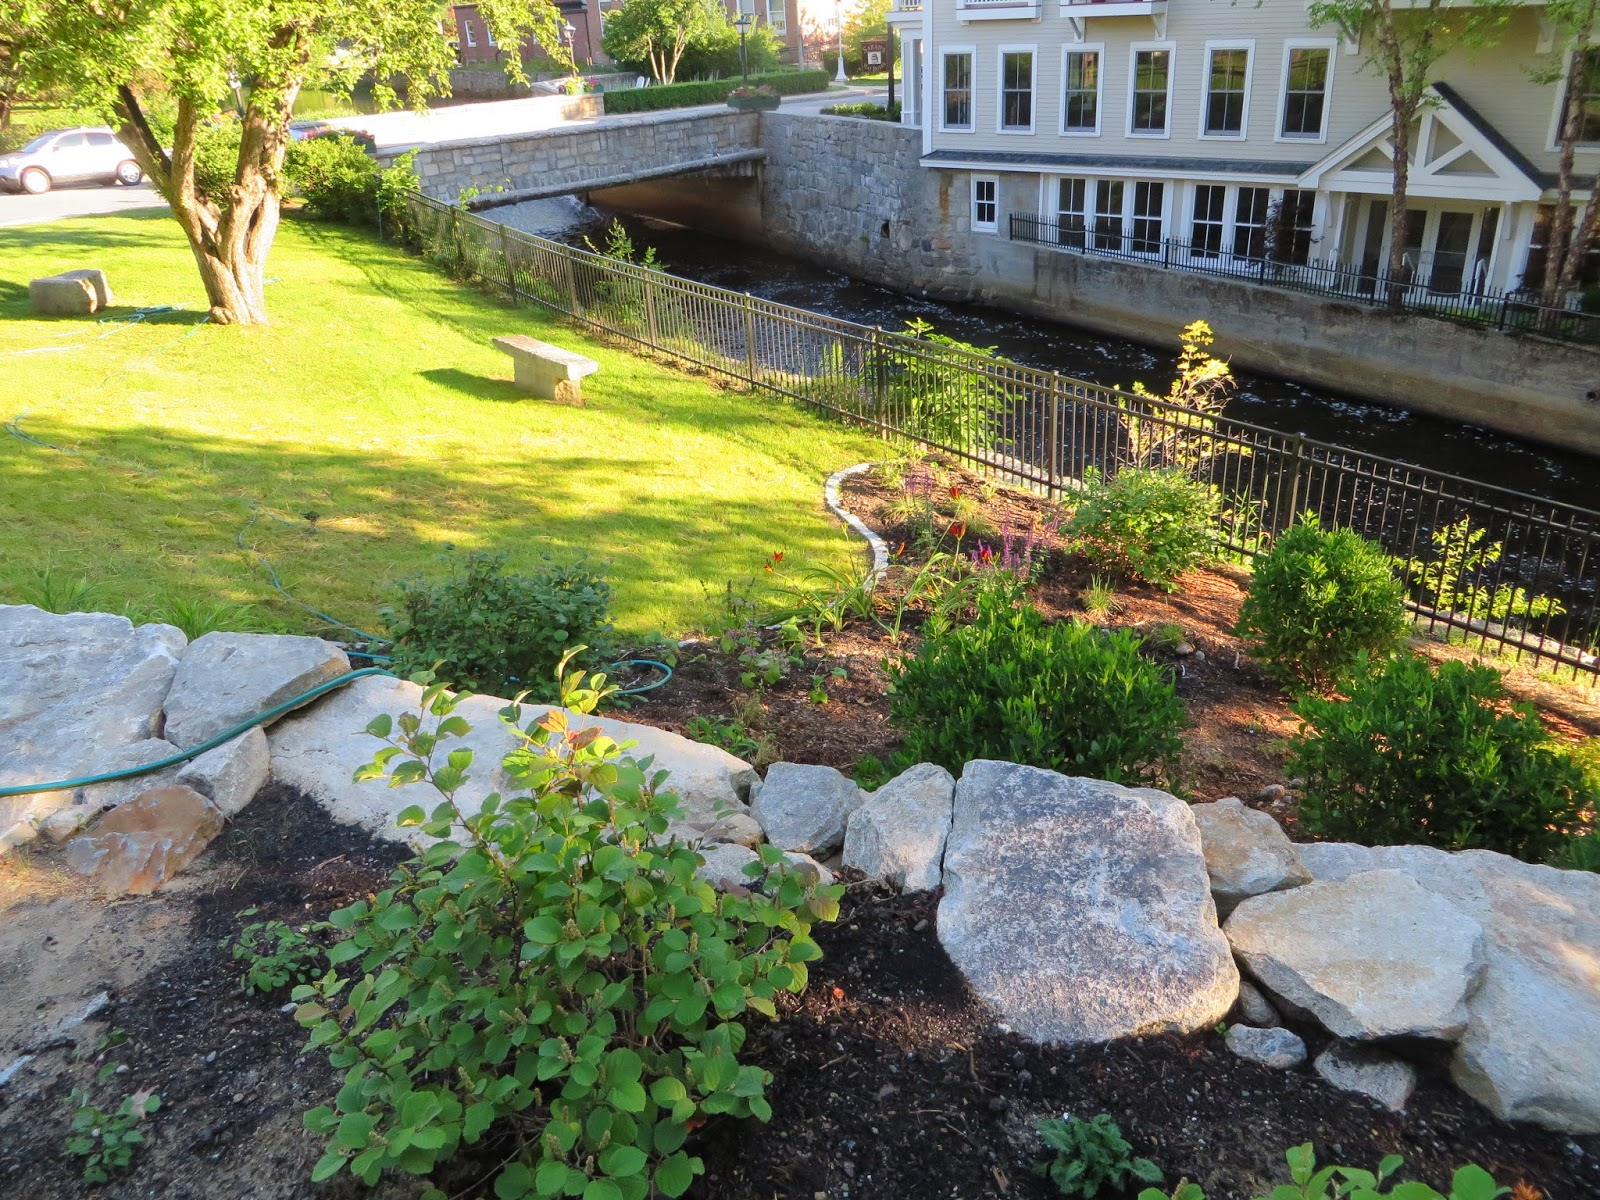 Boccelli garden the completion of a public private for 30 banks terrace swampscott ma